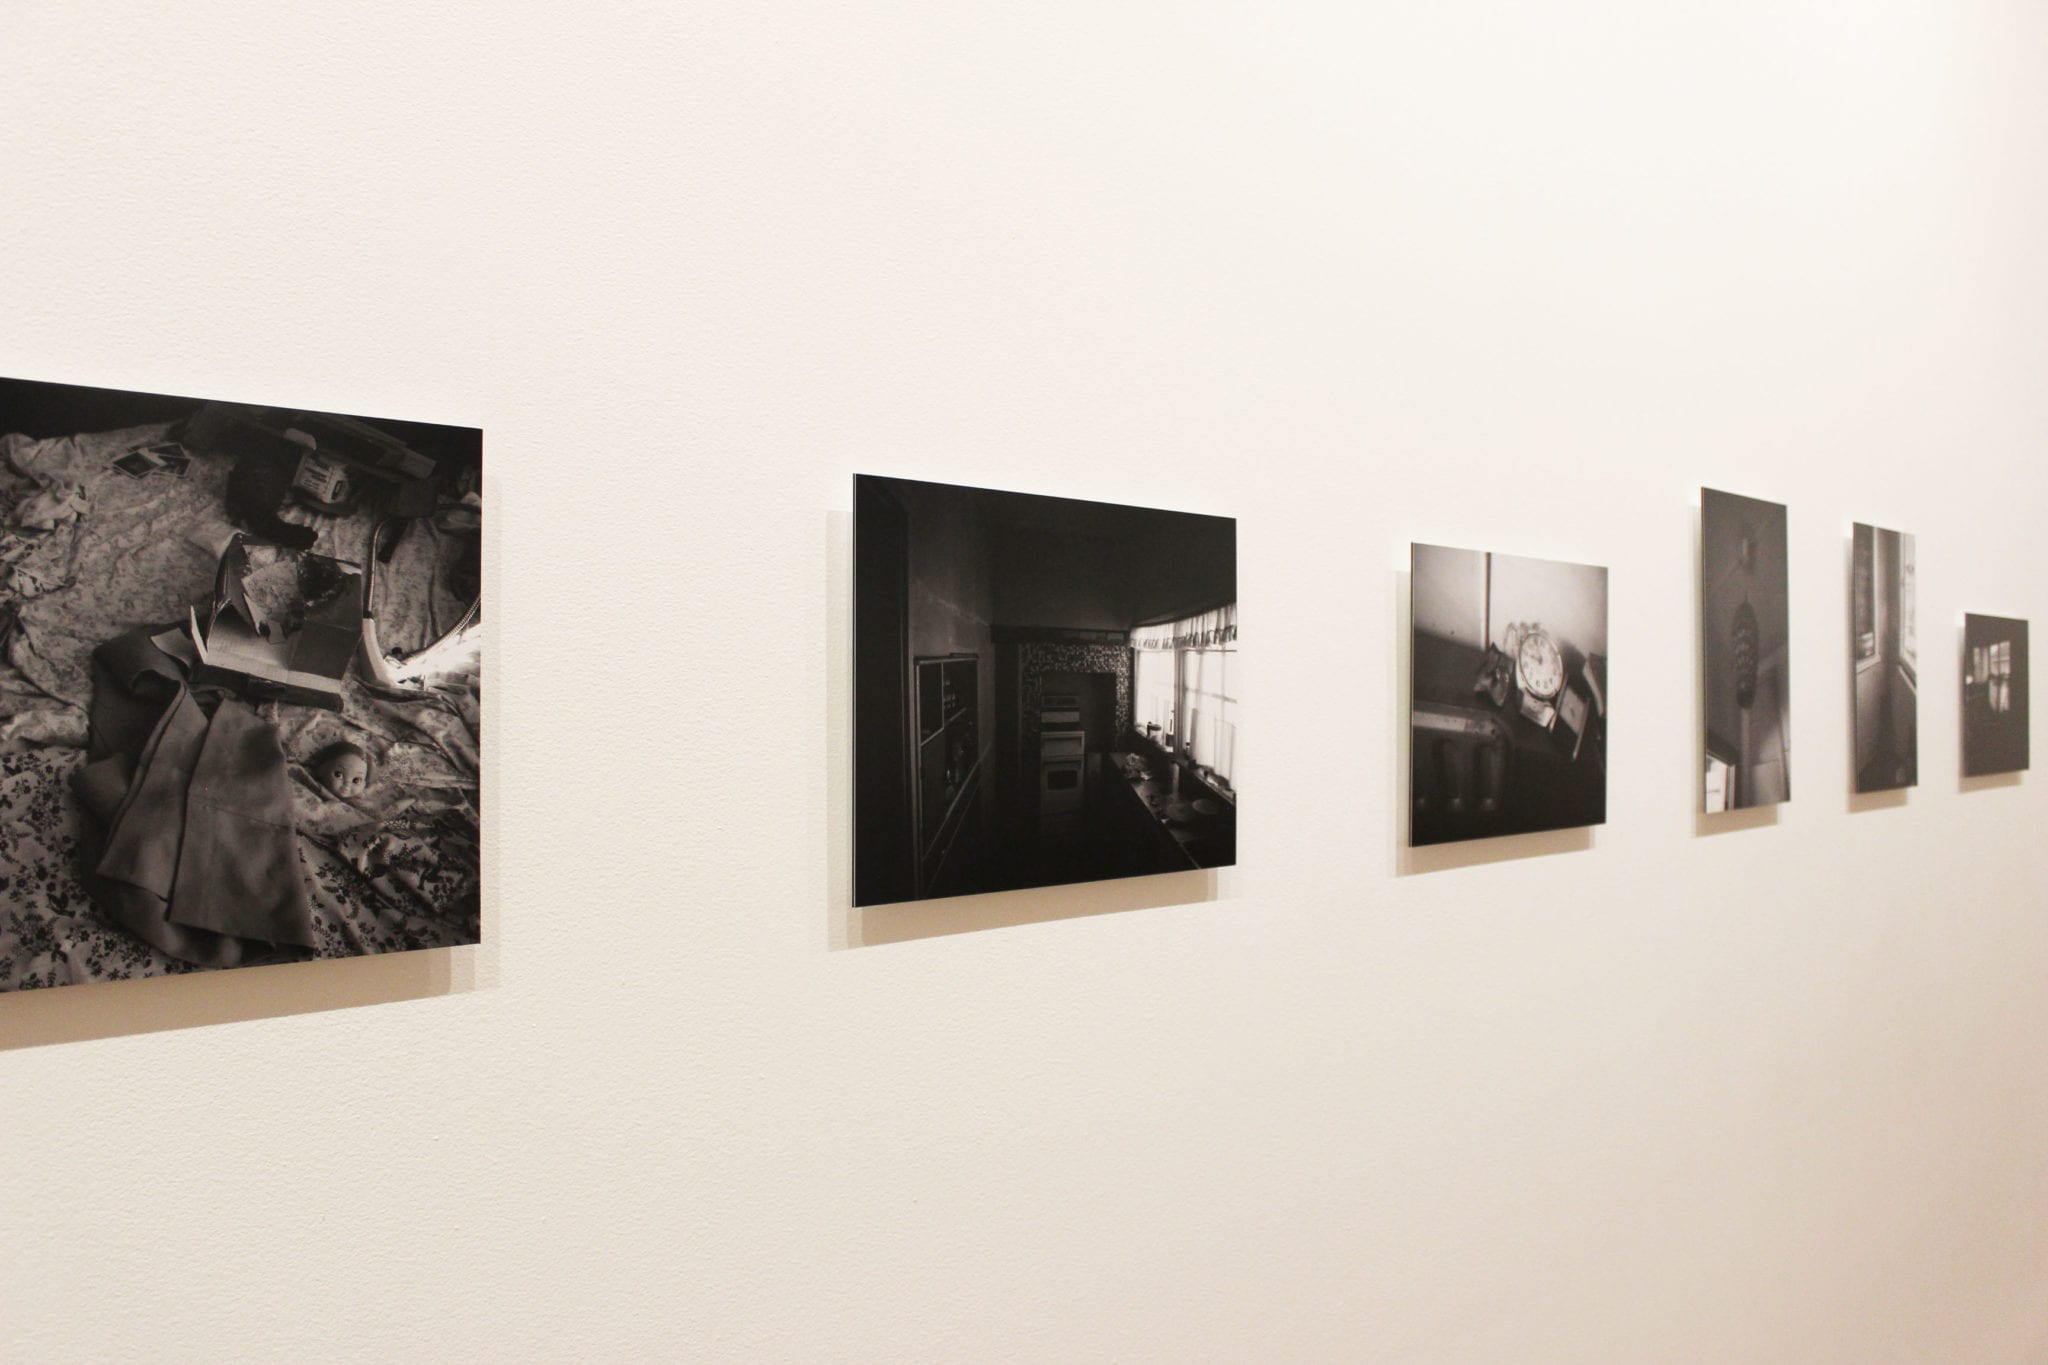 Thirteen works from the series: Long after love left 2014 Type C photograph on di-bond mount 29.7 x 42 cm each Eight from the collection of Latrobe Regional Gallery and five courtesy of the artist